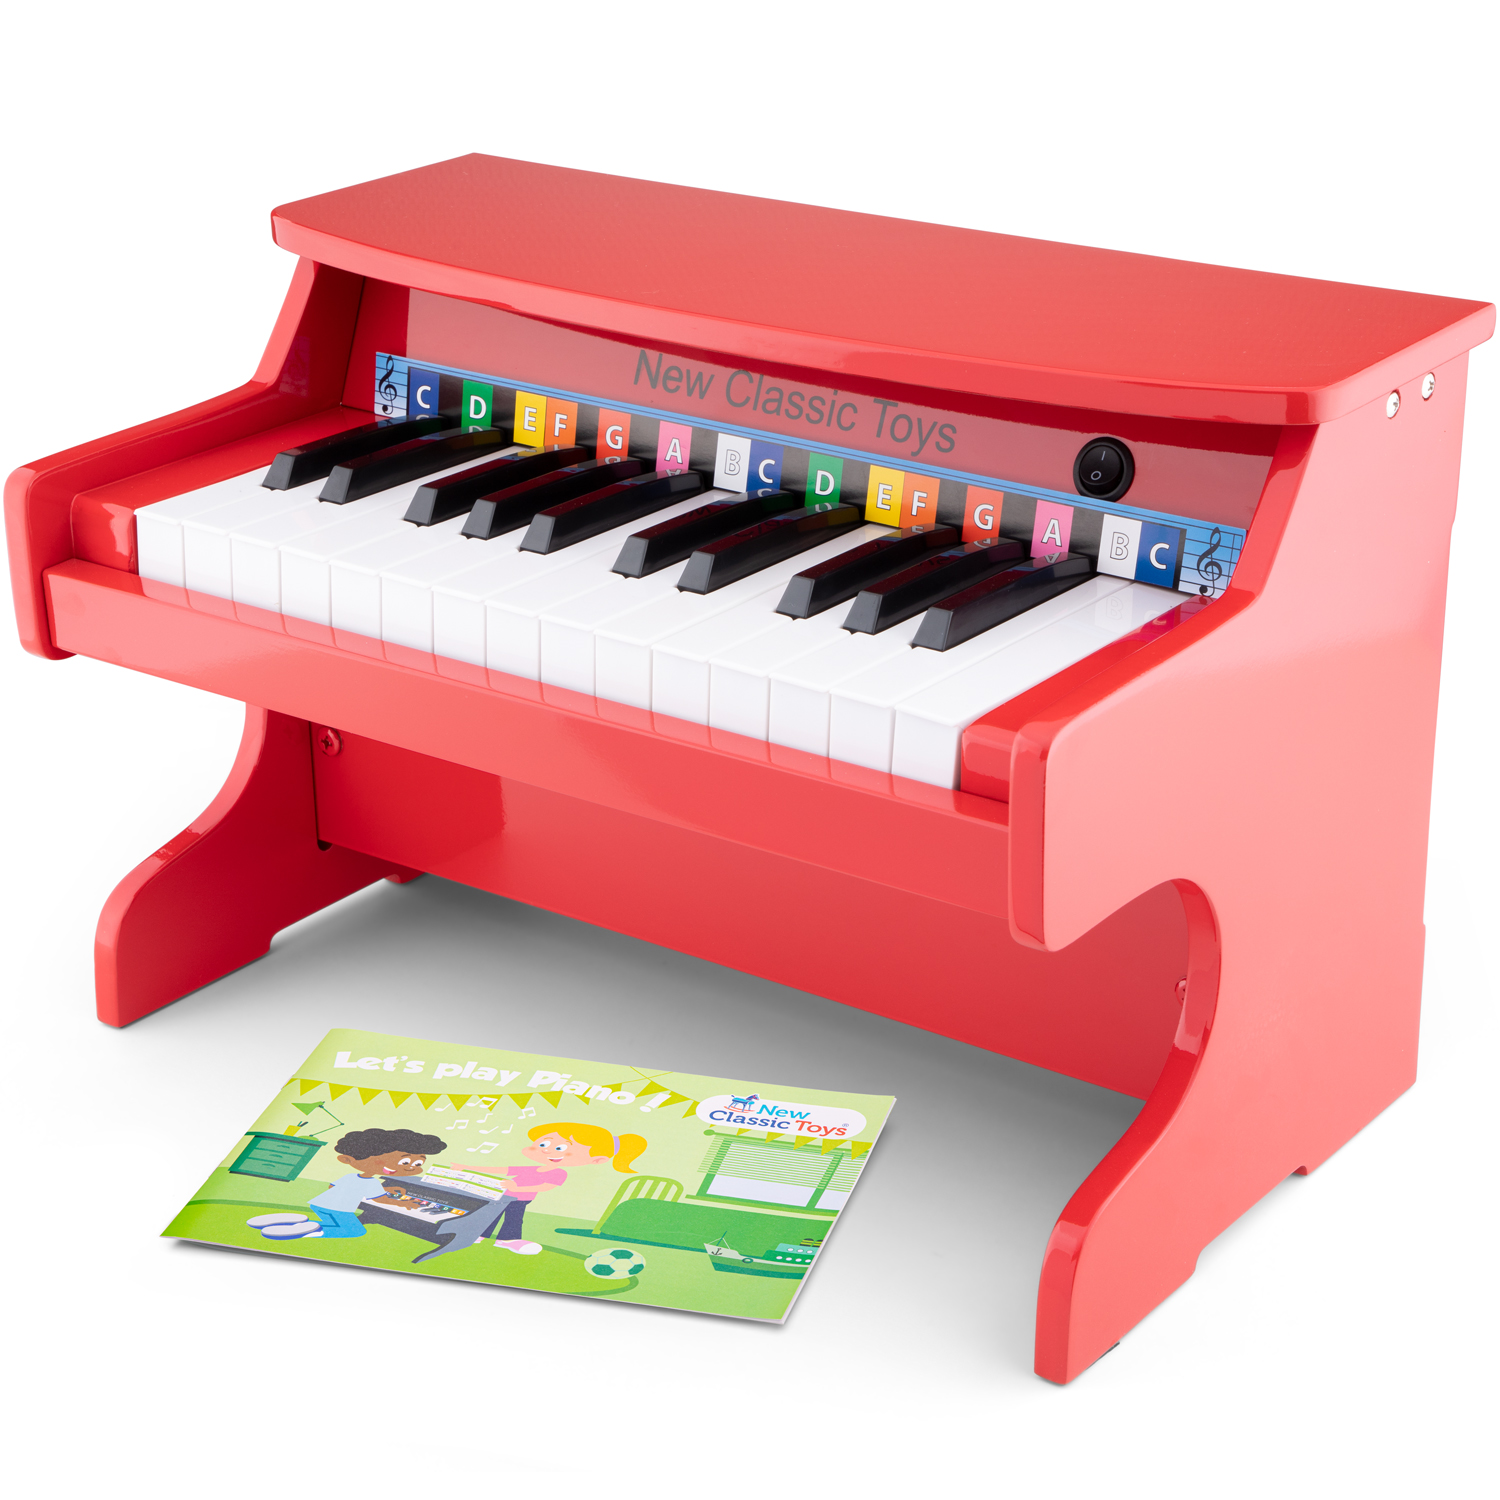 New Classic Toys - Piano Electronique rouge - 25 touches